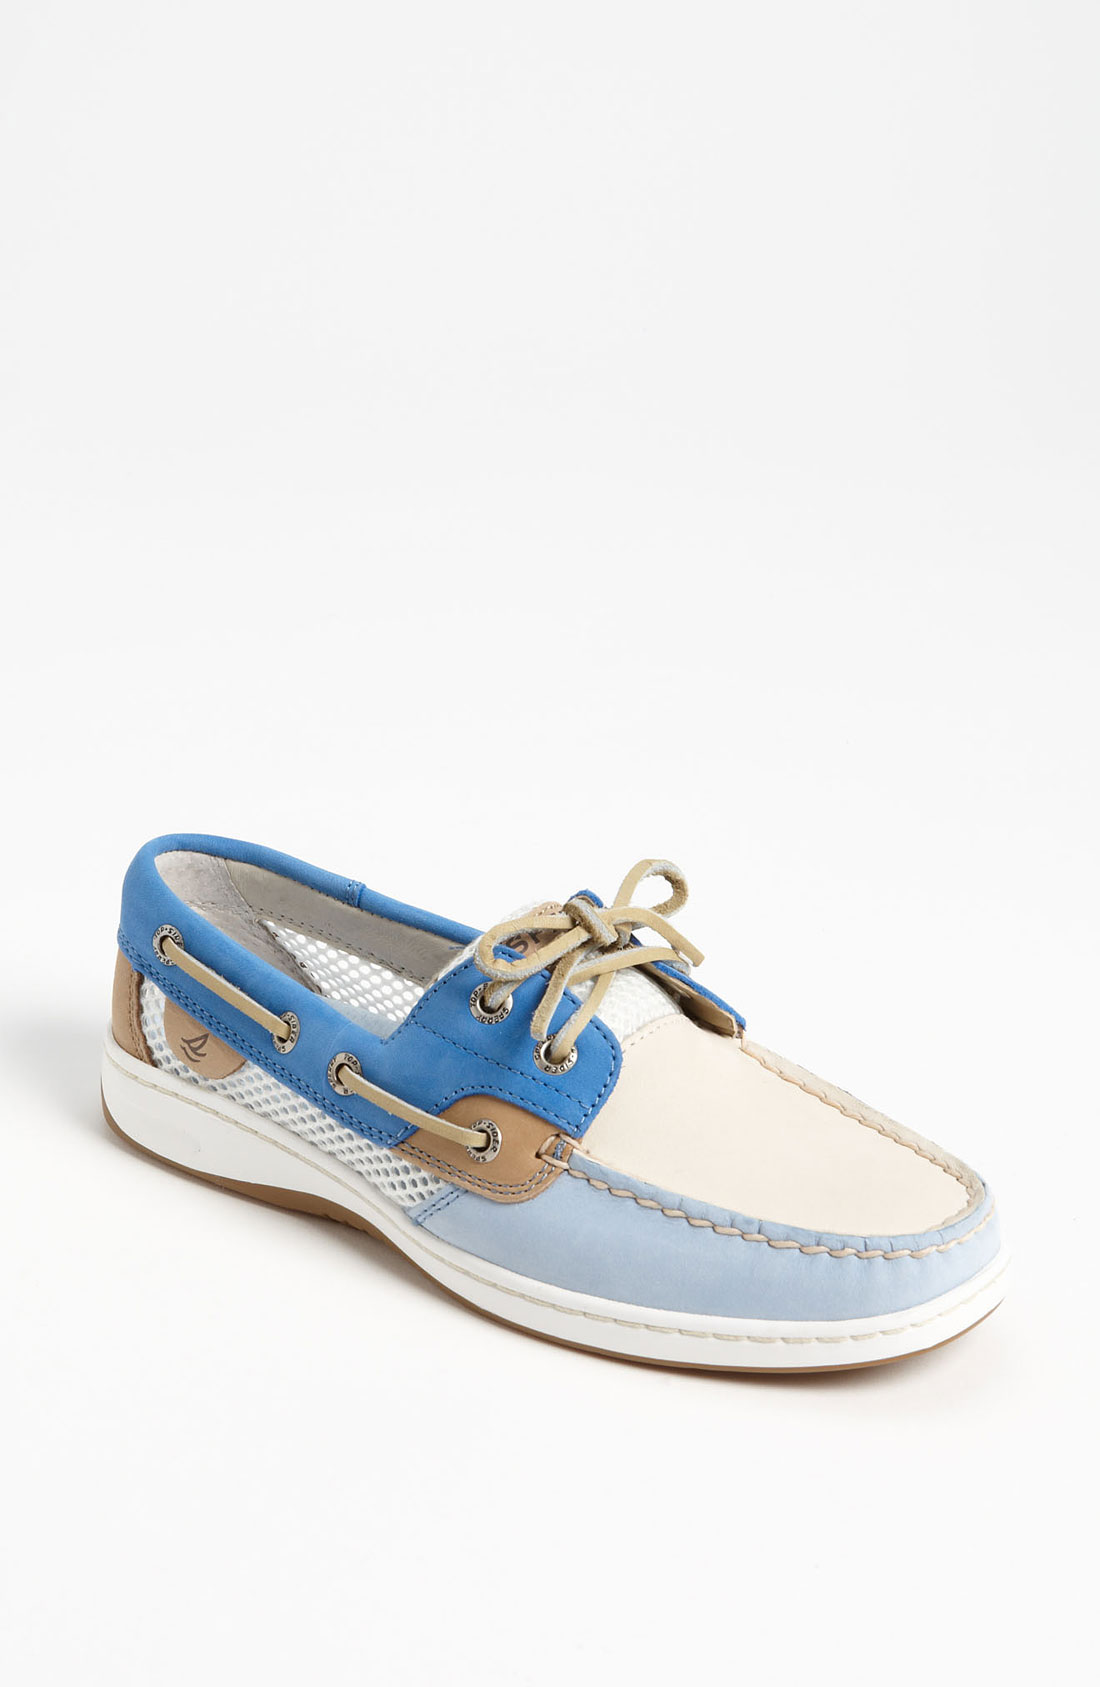 Sperry top sider bluefish 2eye boat shoe women in blue for Best boat shoes for fishing